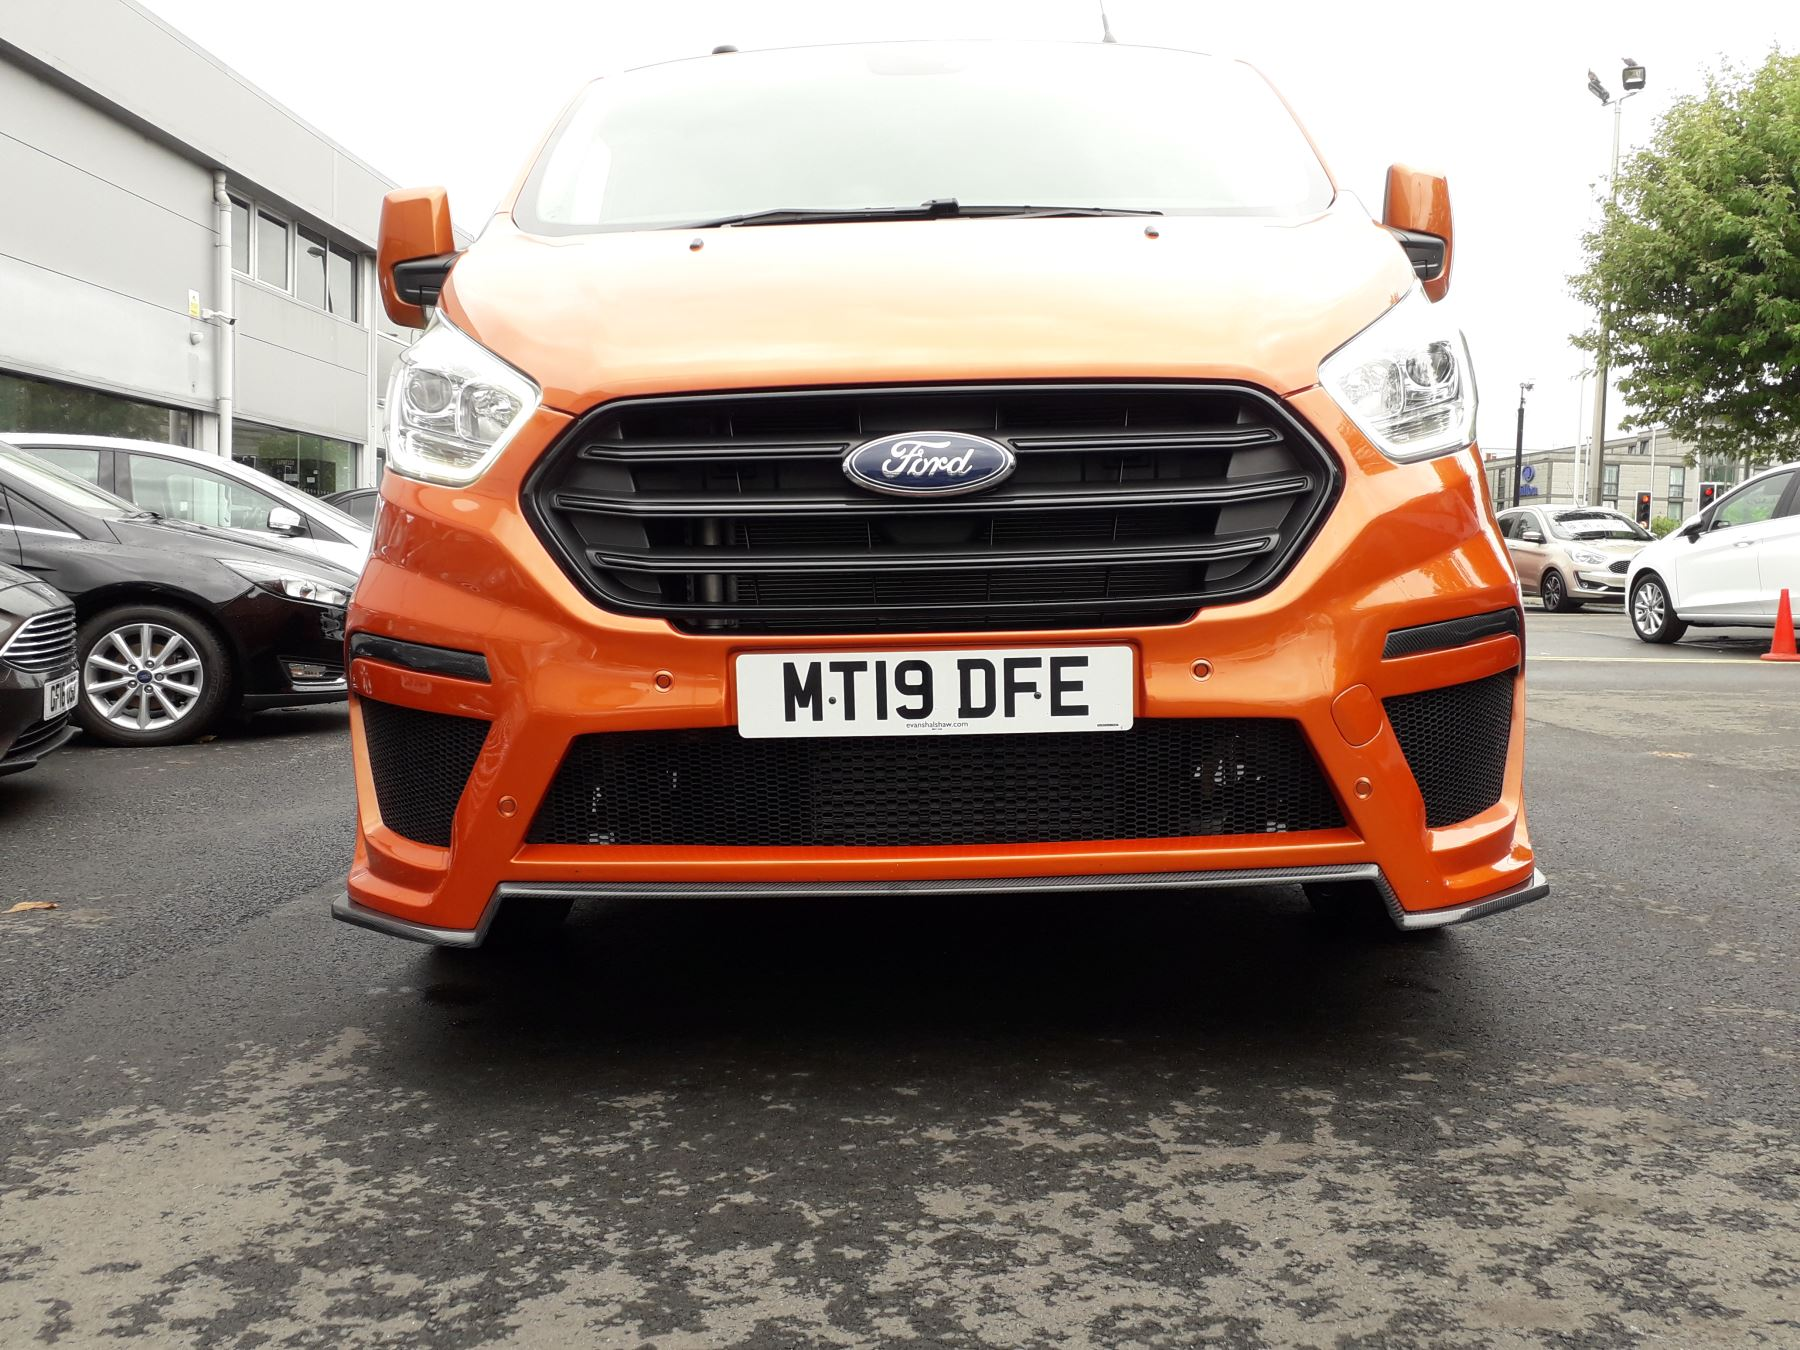 Ford Transit Custom 280 L1 Motion R 130PS Euro 6 image 16